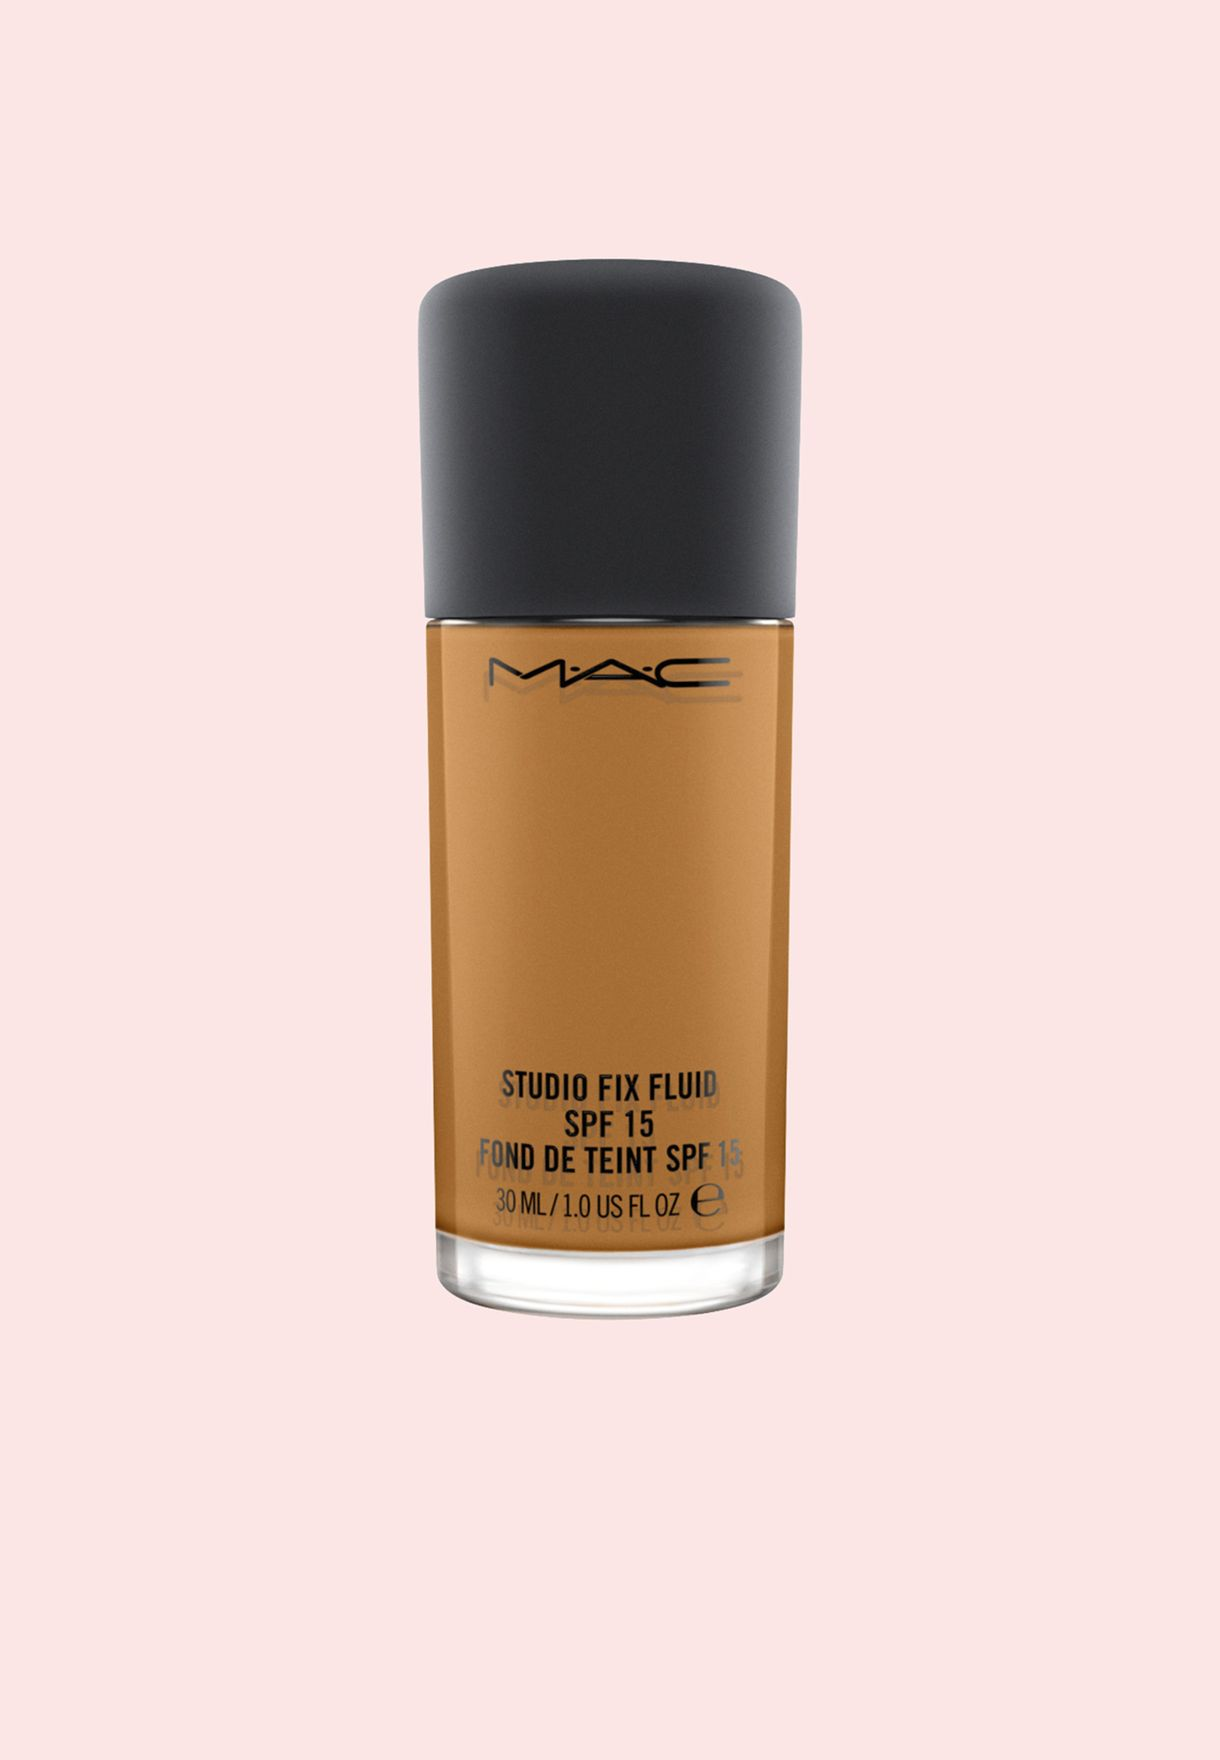 Studio Fix Fluid SPF 15 Foundation - C 55